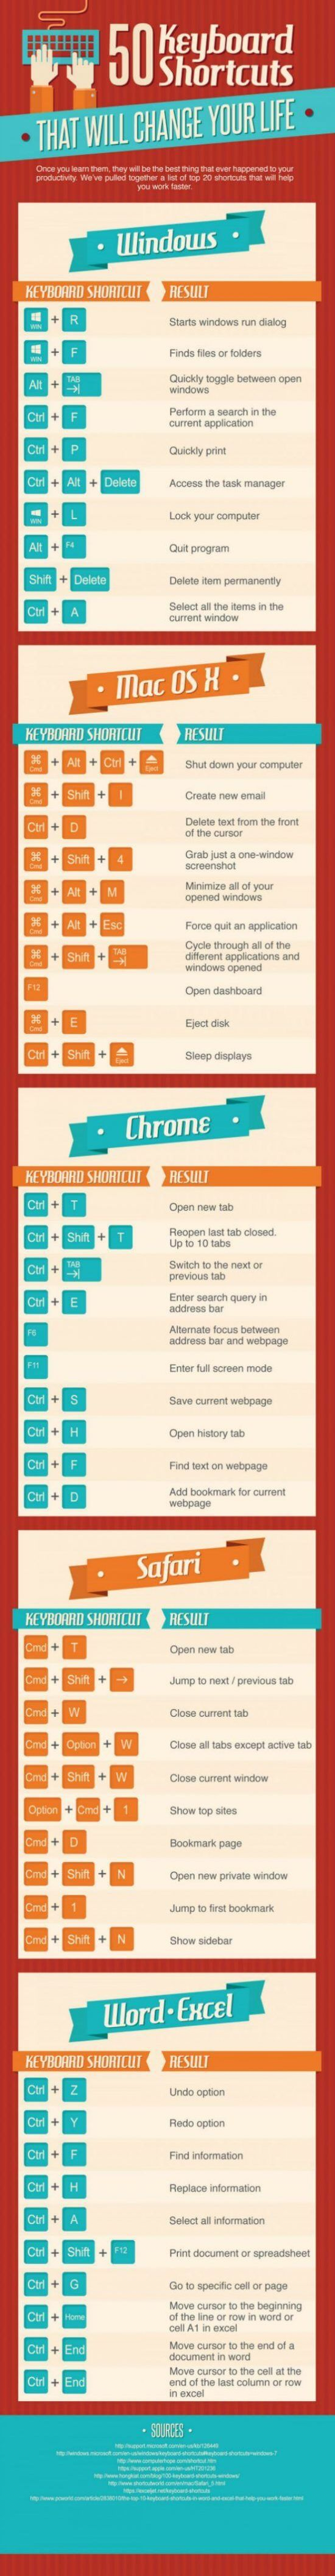 Keyboard Shortcuts To Save You Time Video Instructions